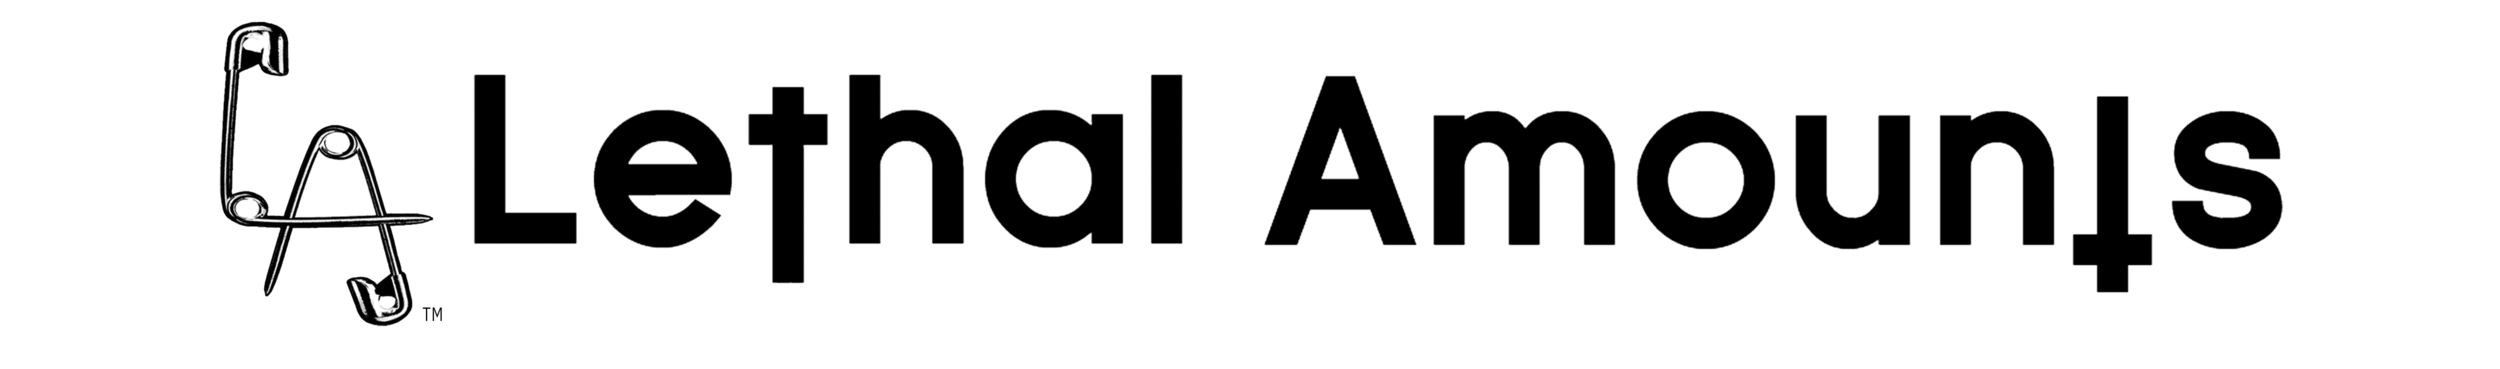 lethal-amounts-Logo-White-Long.png